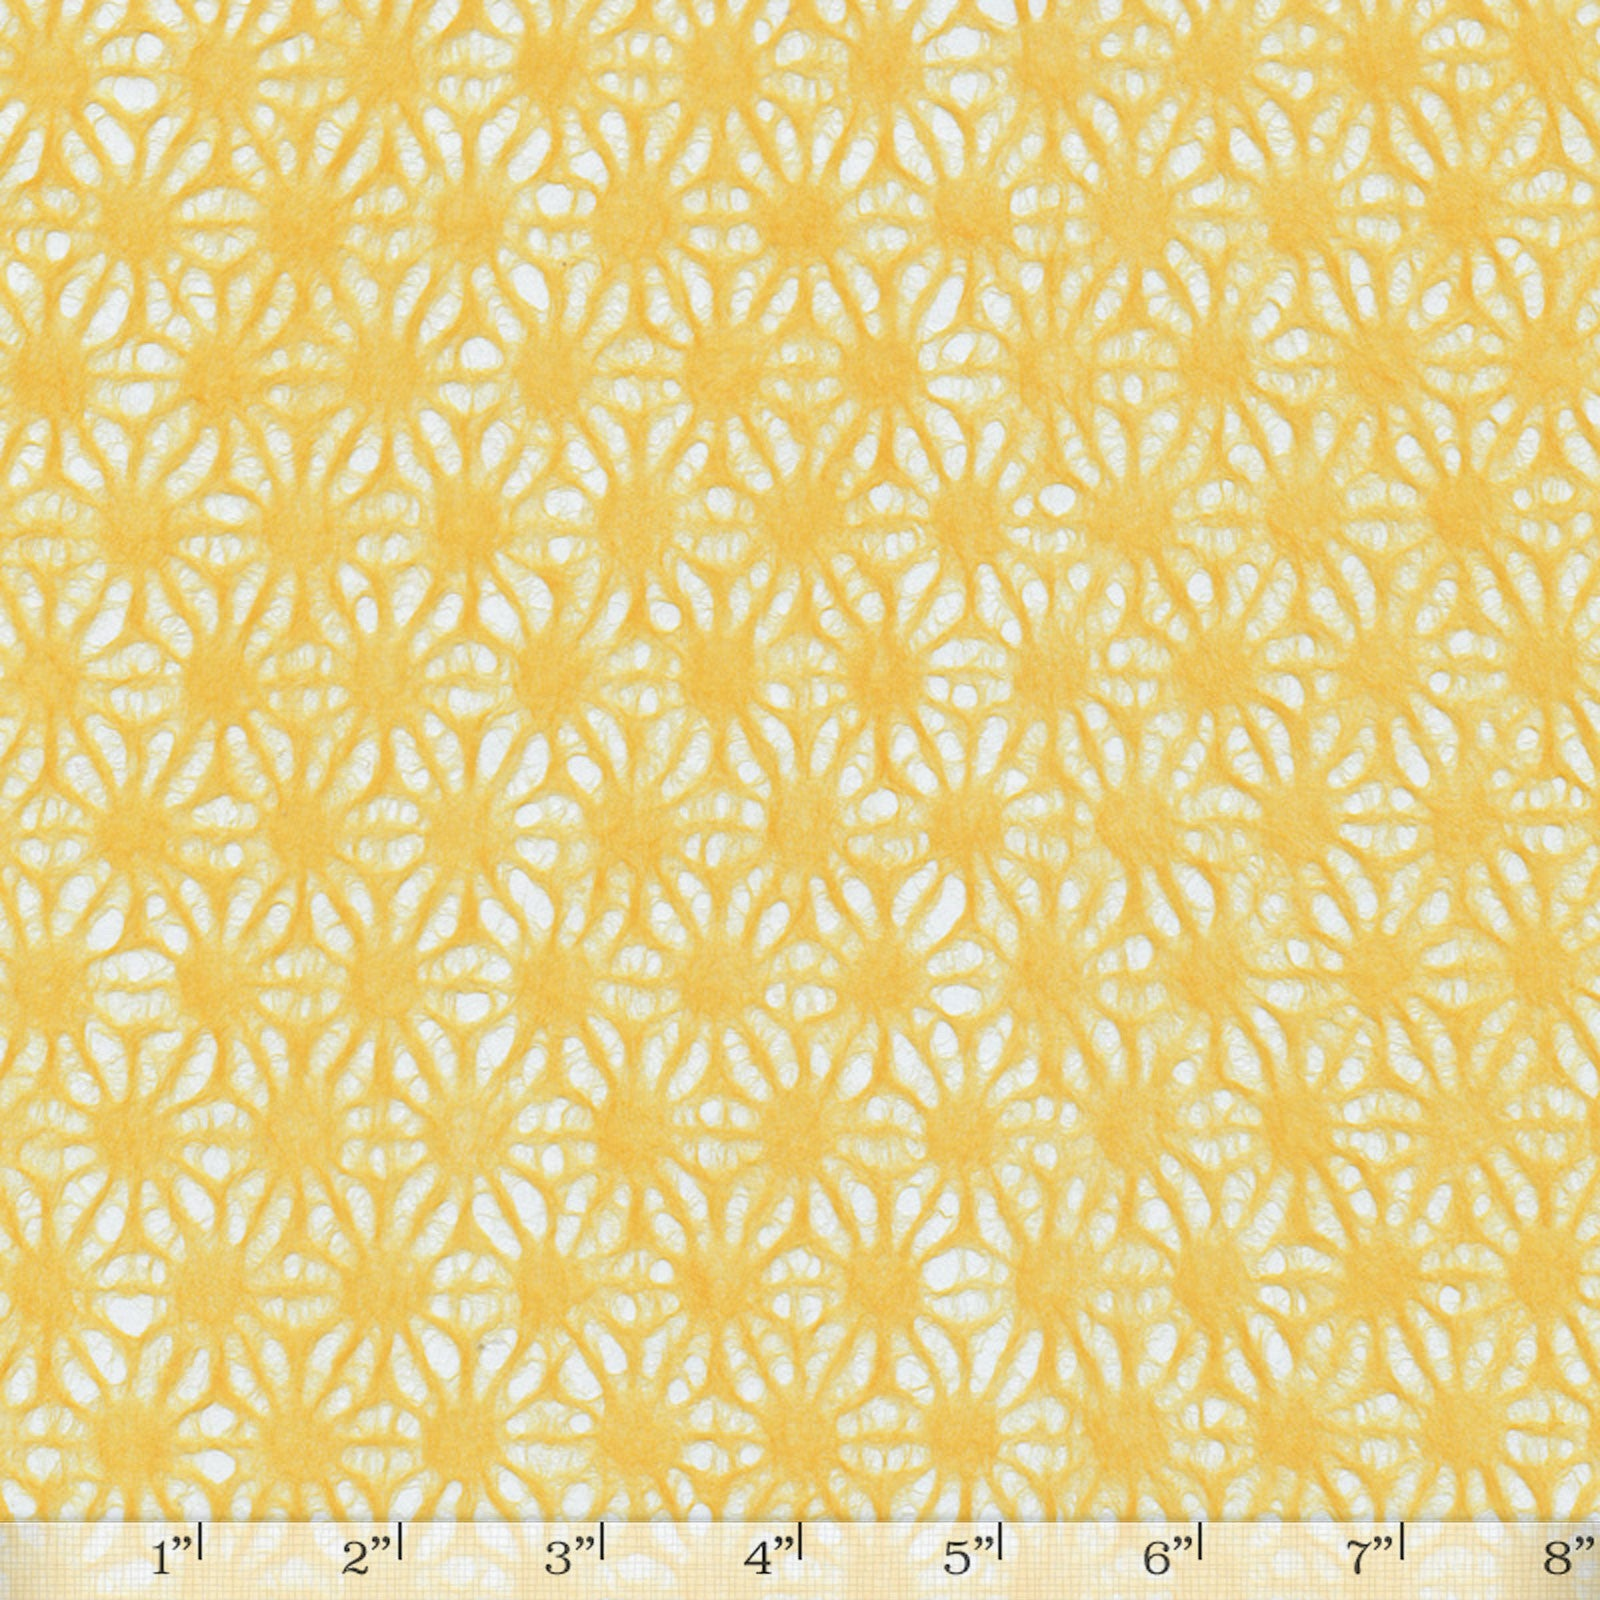 Hemp Flower Marigold - Full Sheet